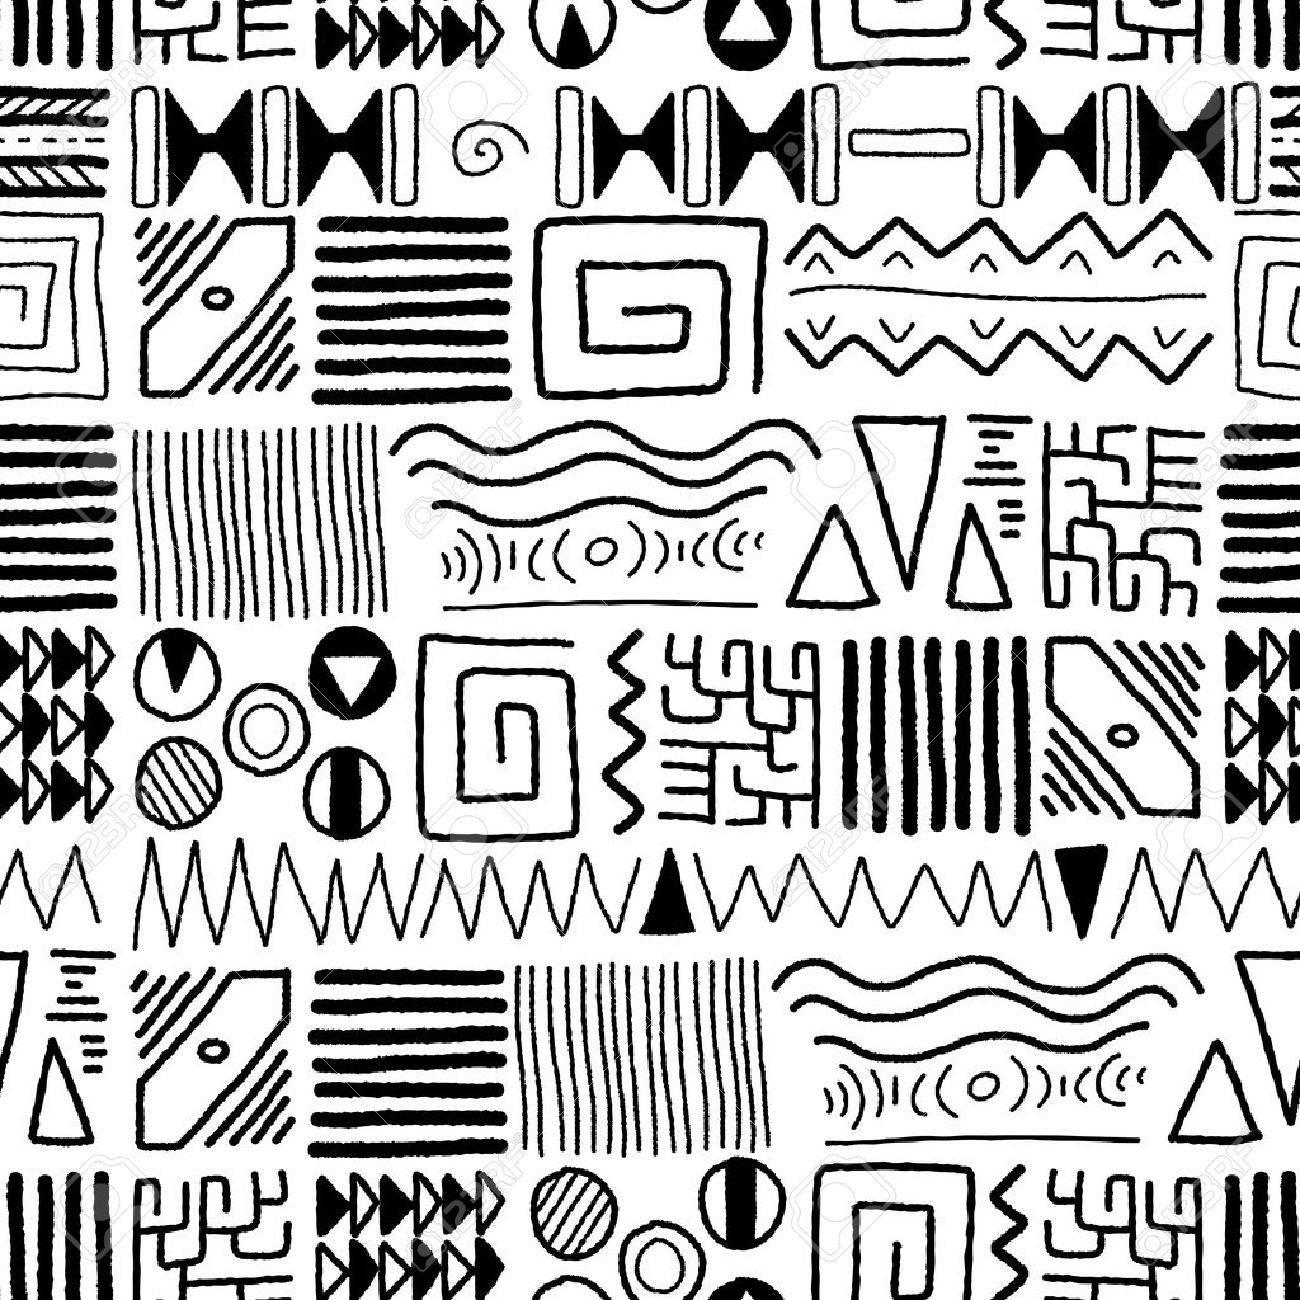 African ethnic pattern - indigenous art background. Africa style design. - 44185402